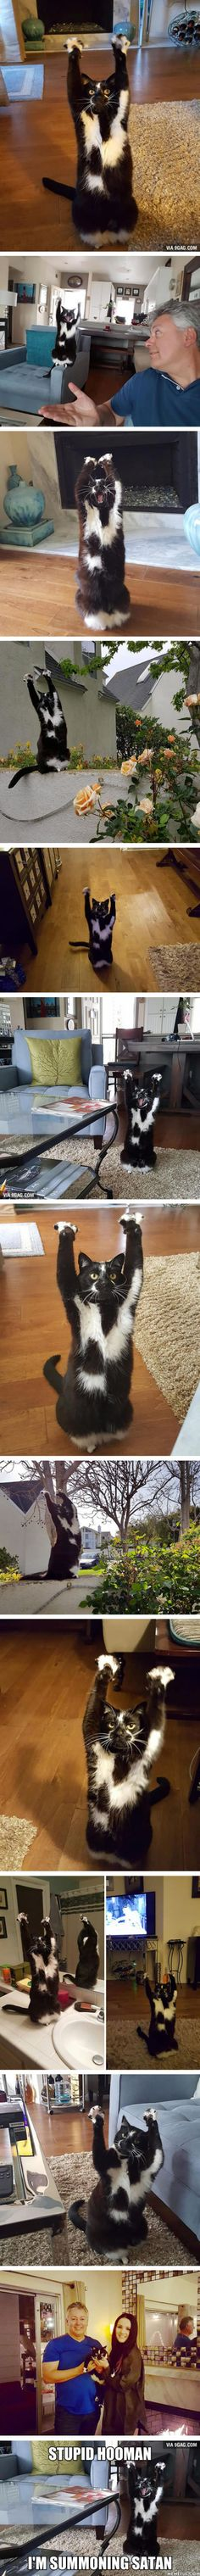 This Cat Keeps Putting Its Paws In The Air And Nobody Knows Why <<-- He's probably saying :Hello! How much more of hint do you need for me to picked up?""